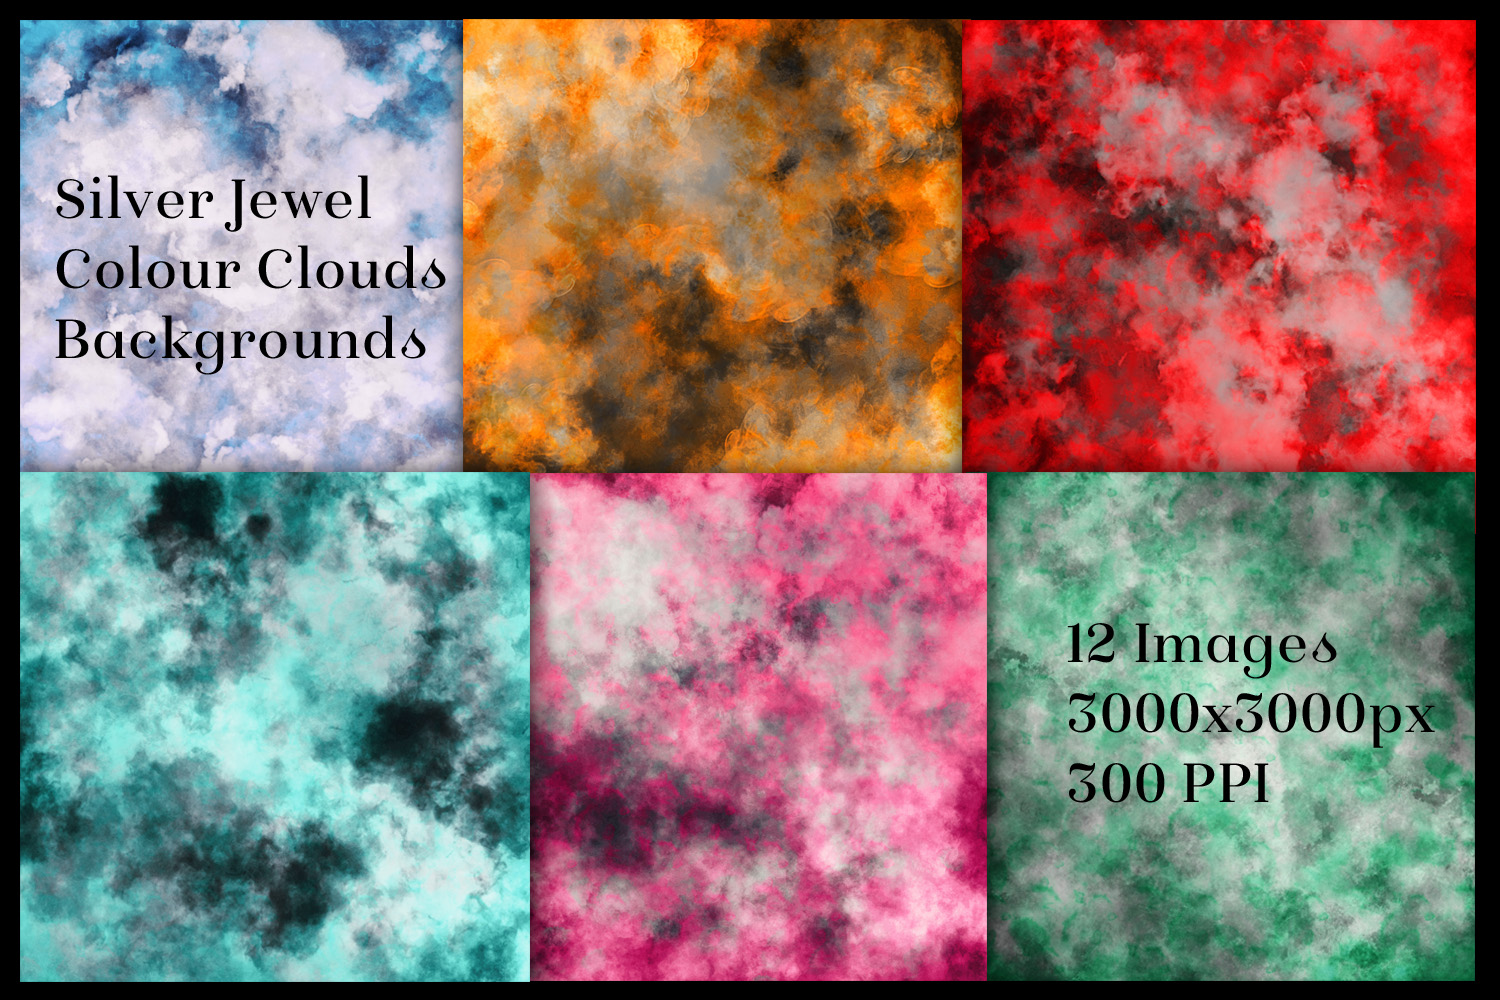 Silver and Jewel Colour Clouds Backgrounds - 12 Image Set example image 2